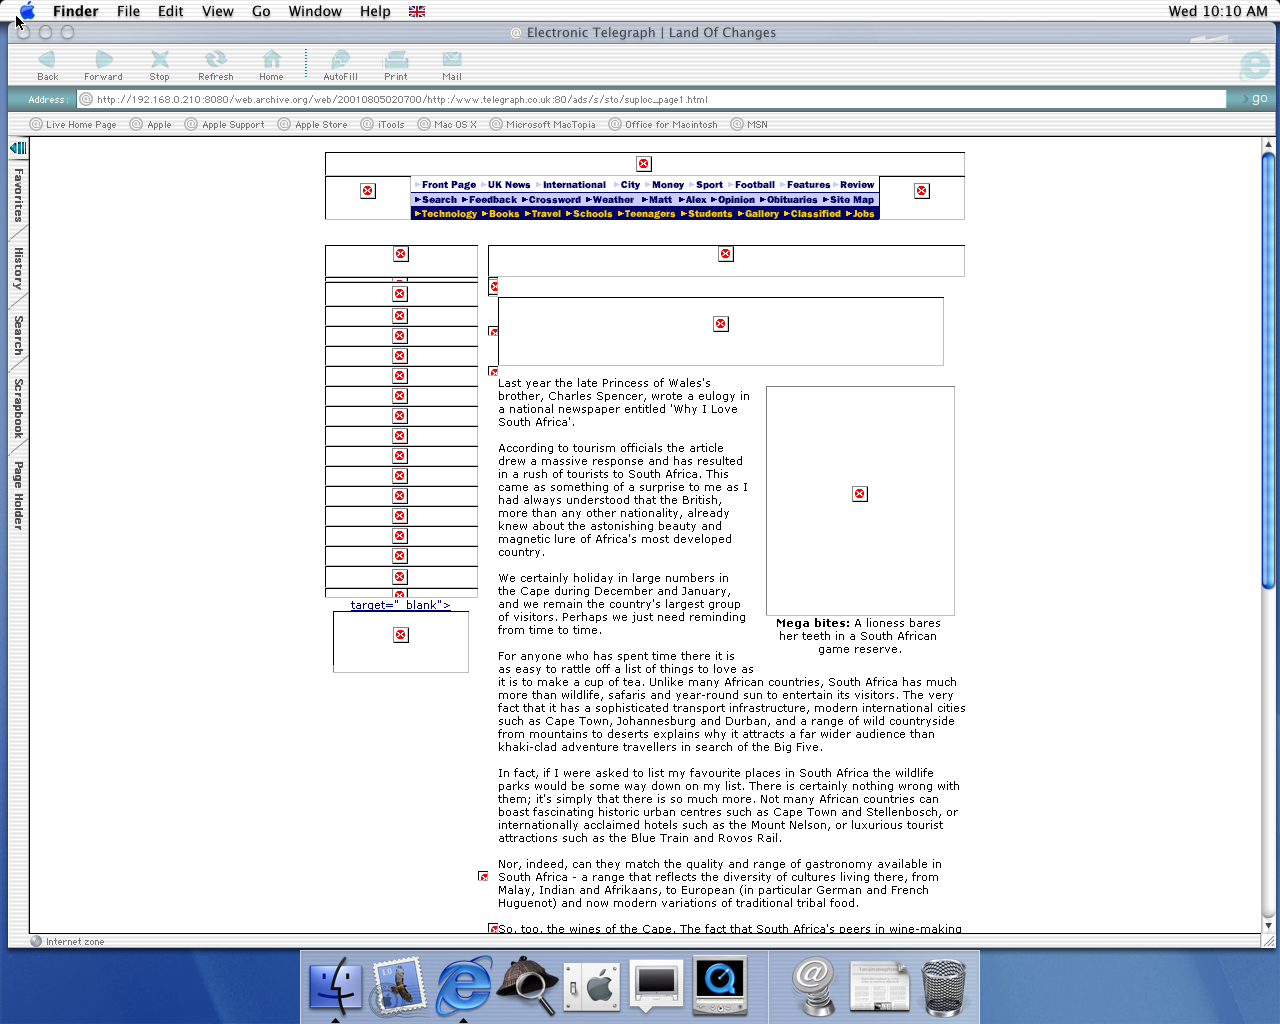 OS X 10.0 PPC with Microsoft Internet Explorer 5.1 for Mac Preview displaying a page from The Telegraph archived at August 05, 2001 at 02:07:00